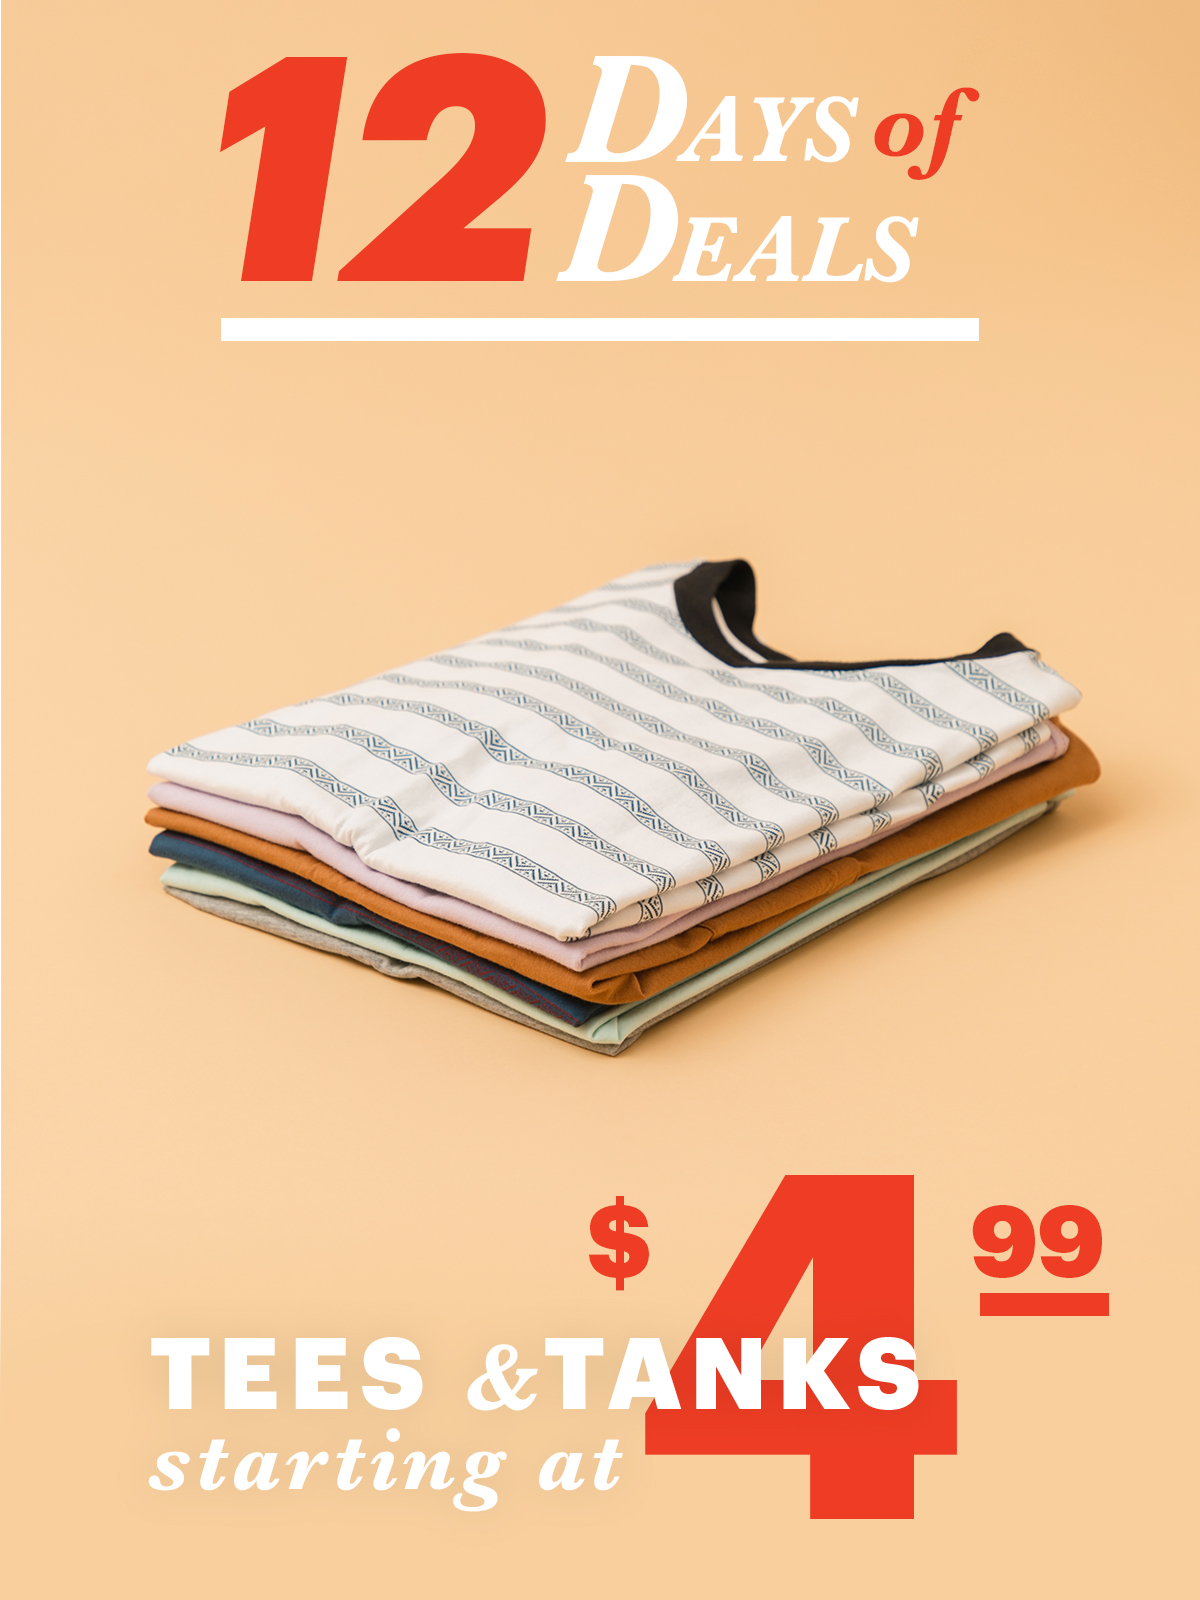 12 Days Of Deals: Day 7 Tess & Tanks Starting at $4.99